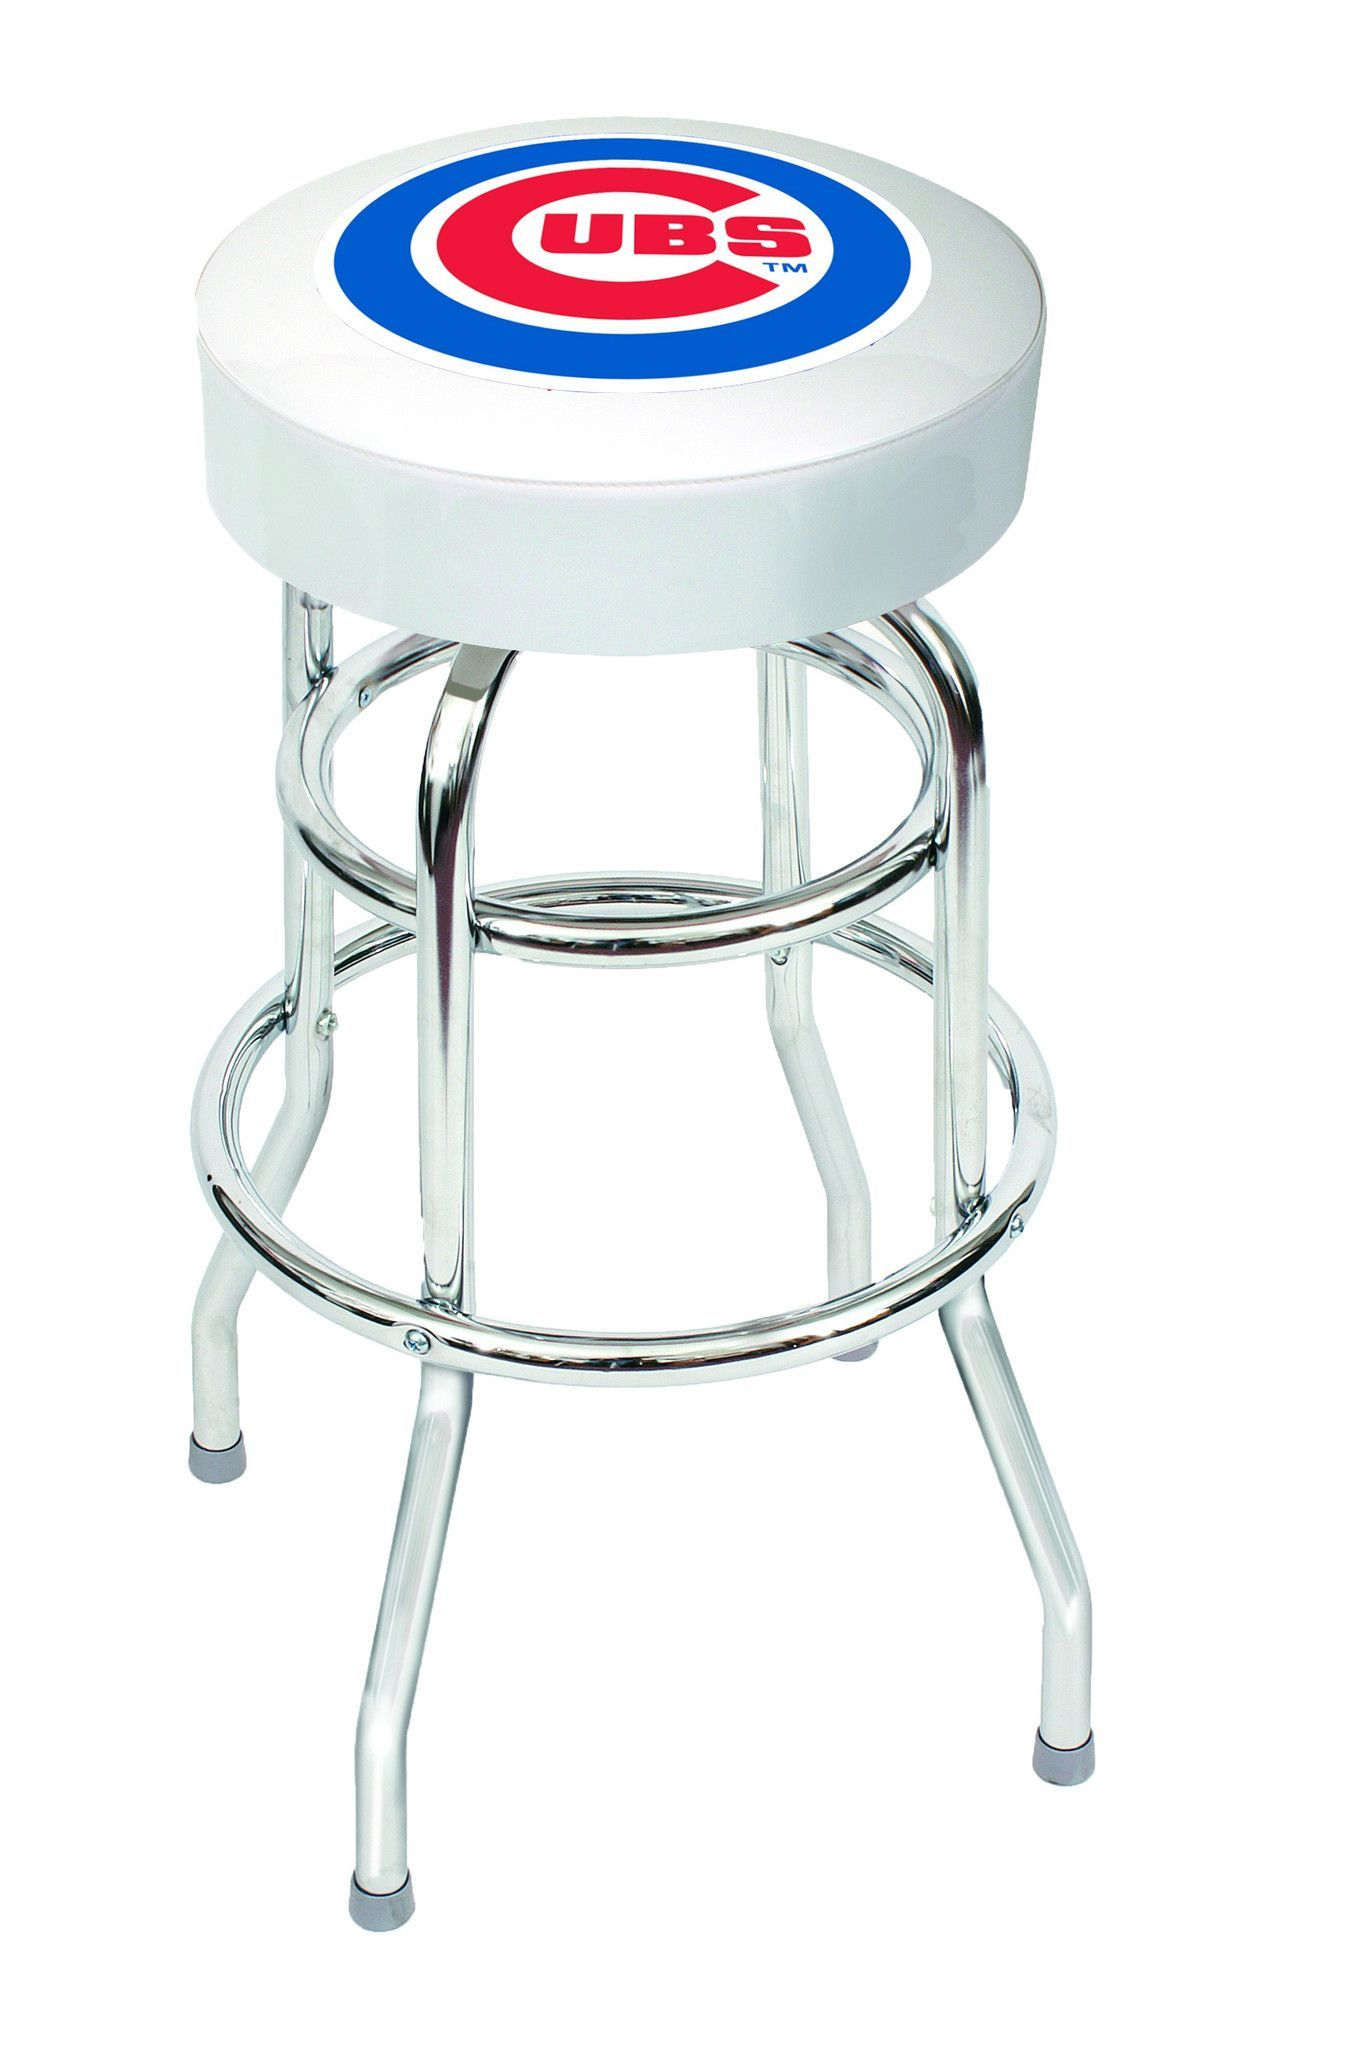 The Chicago Cubs Imperial USA Bar Stool